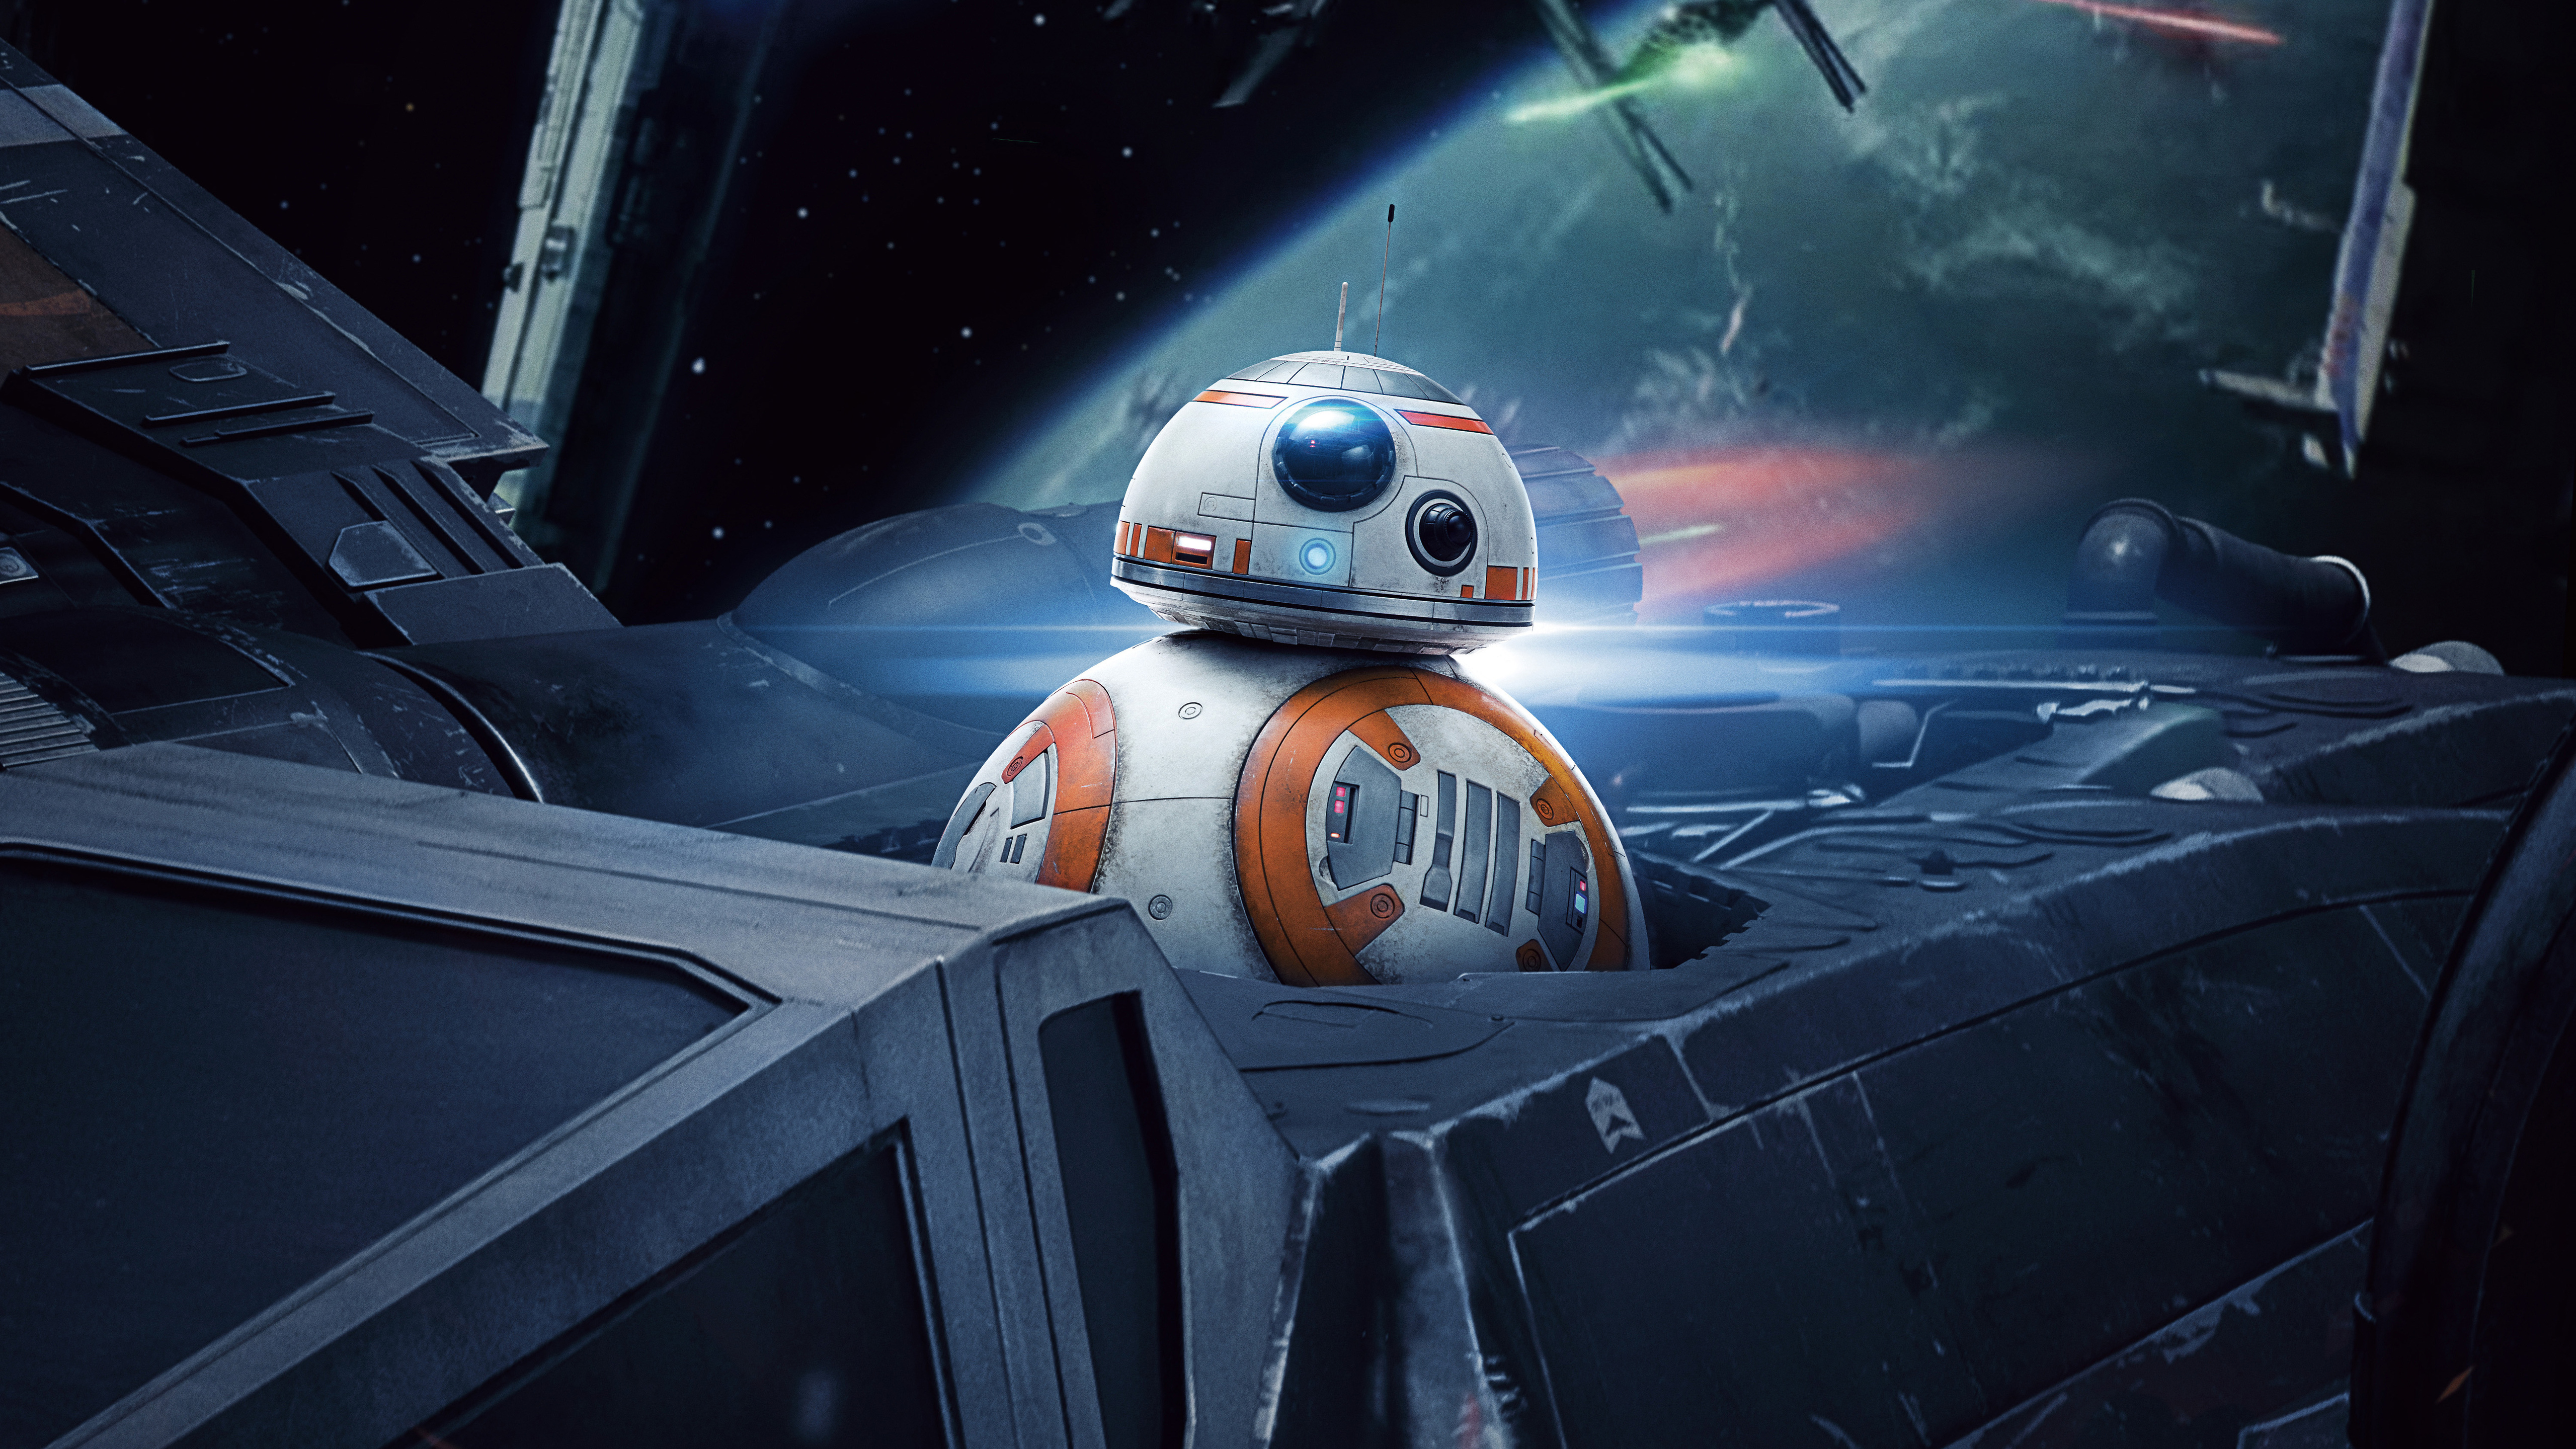 5120x2880 Bb8 In Star Wars The Last Jedi 5k 5k Hd 4k Wallpapers Images Backgrounds Photos And Pictures